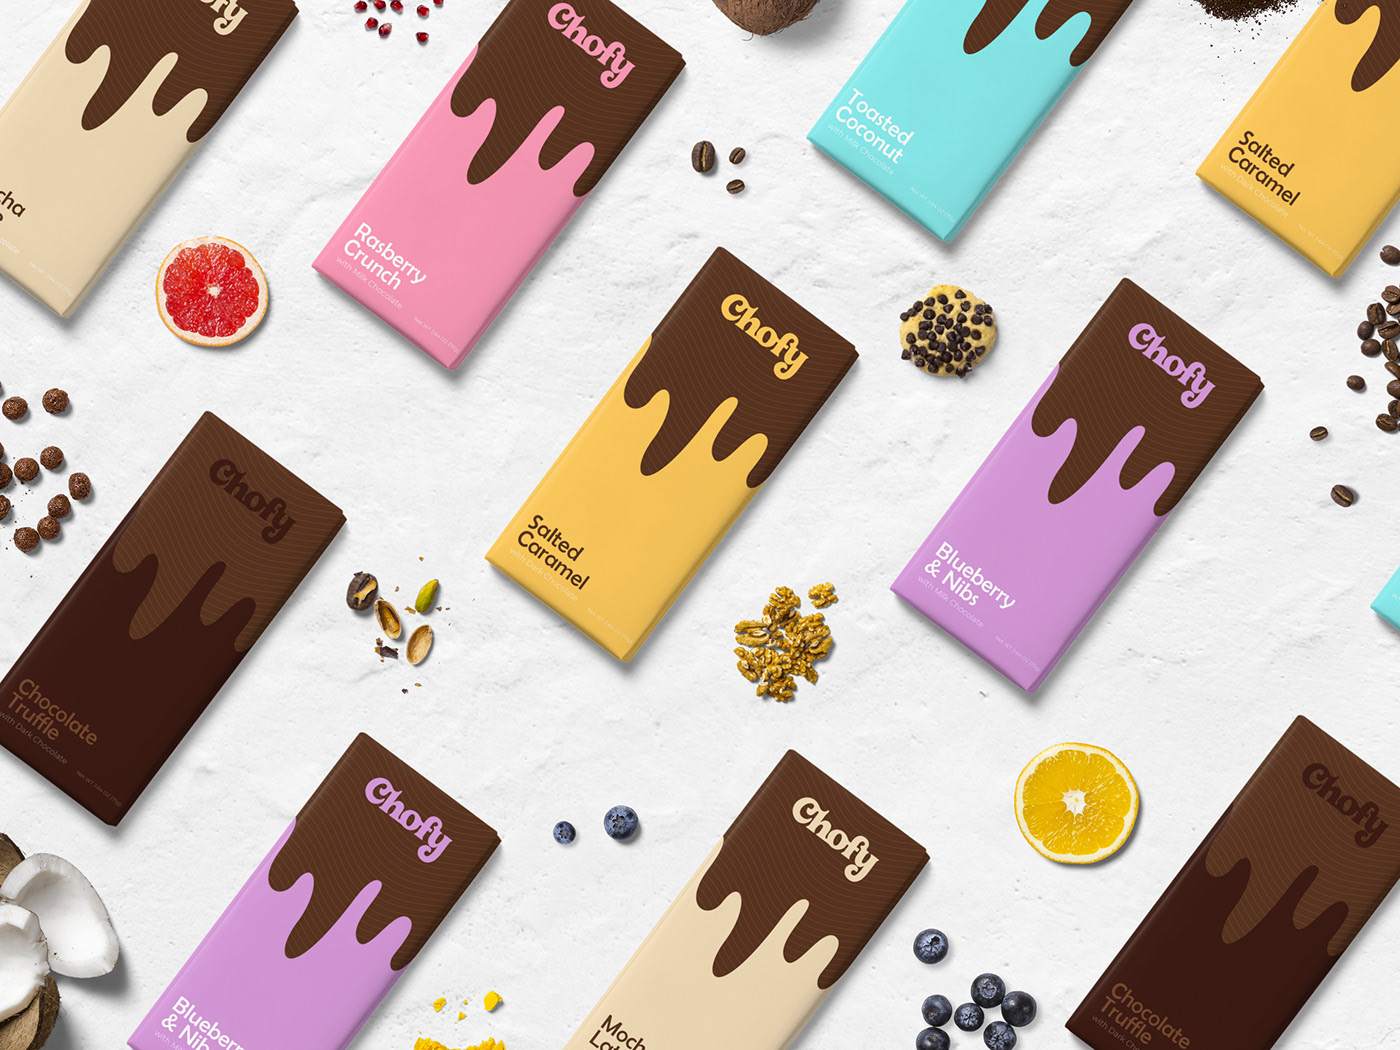 Branding and packaging design for Chofy, a chocolate brand.